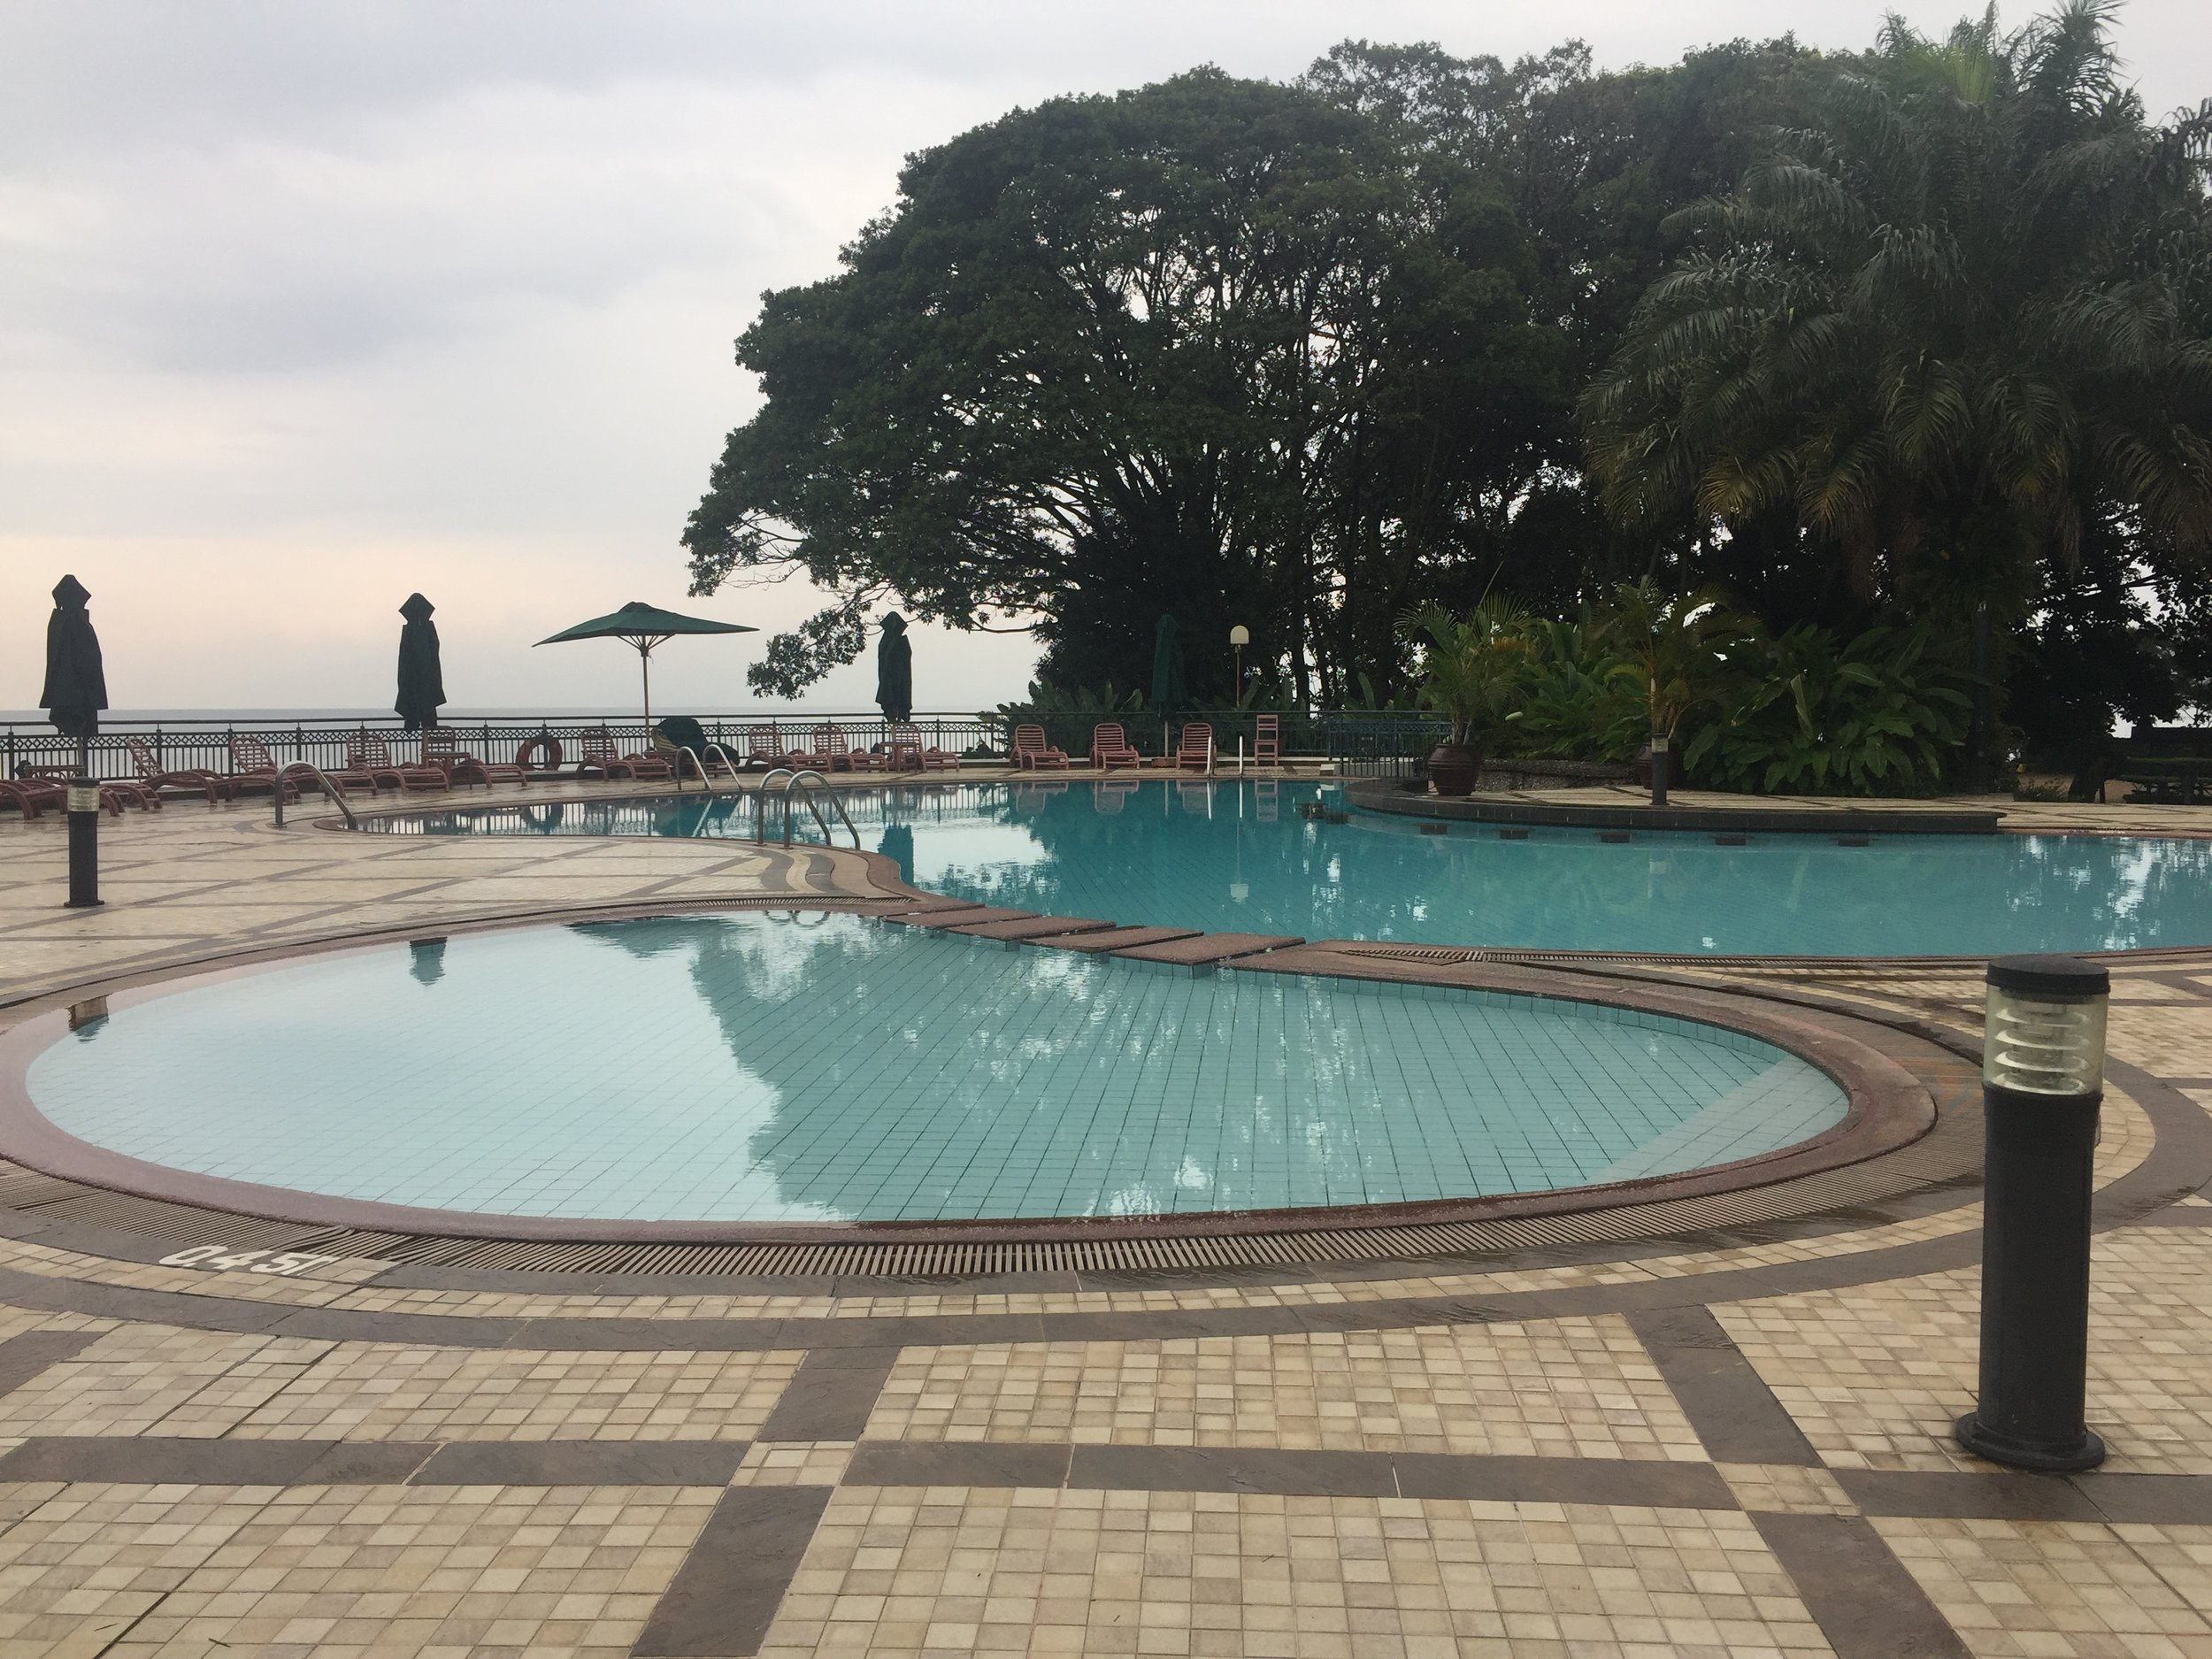 Serena Lake Kivu resort | The Ajala Bug